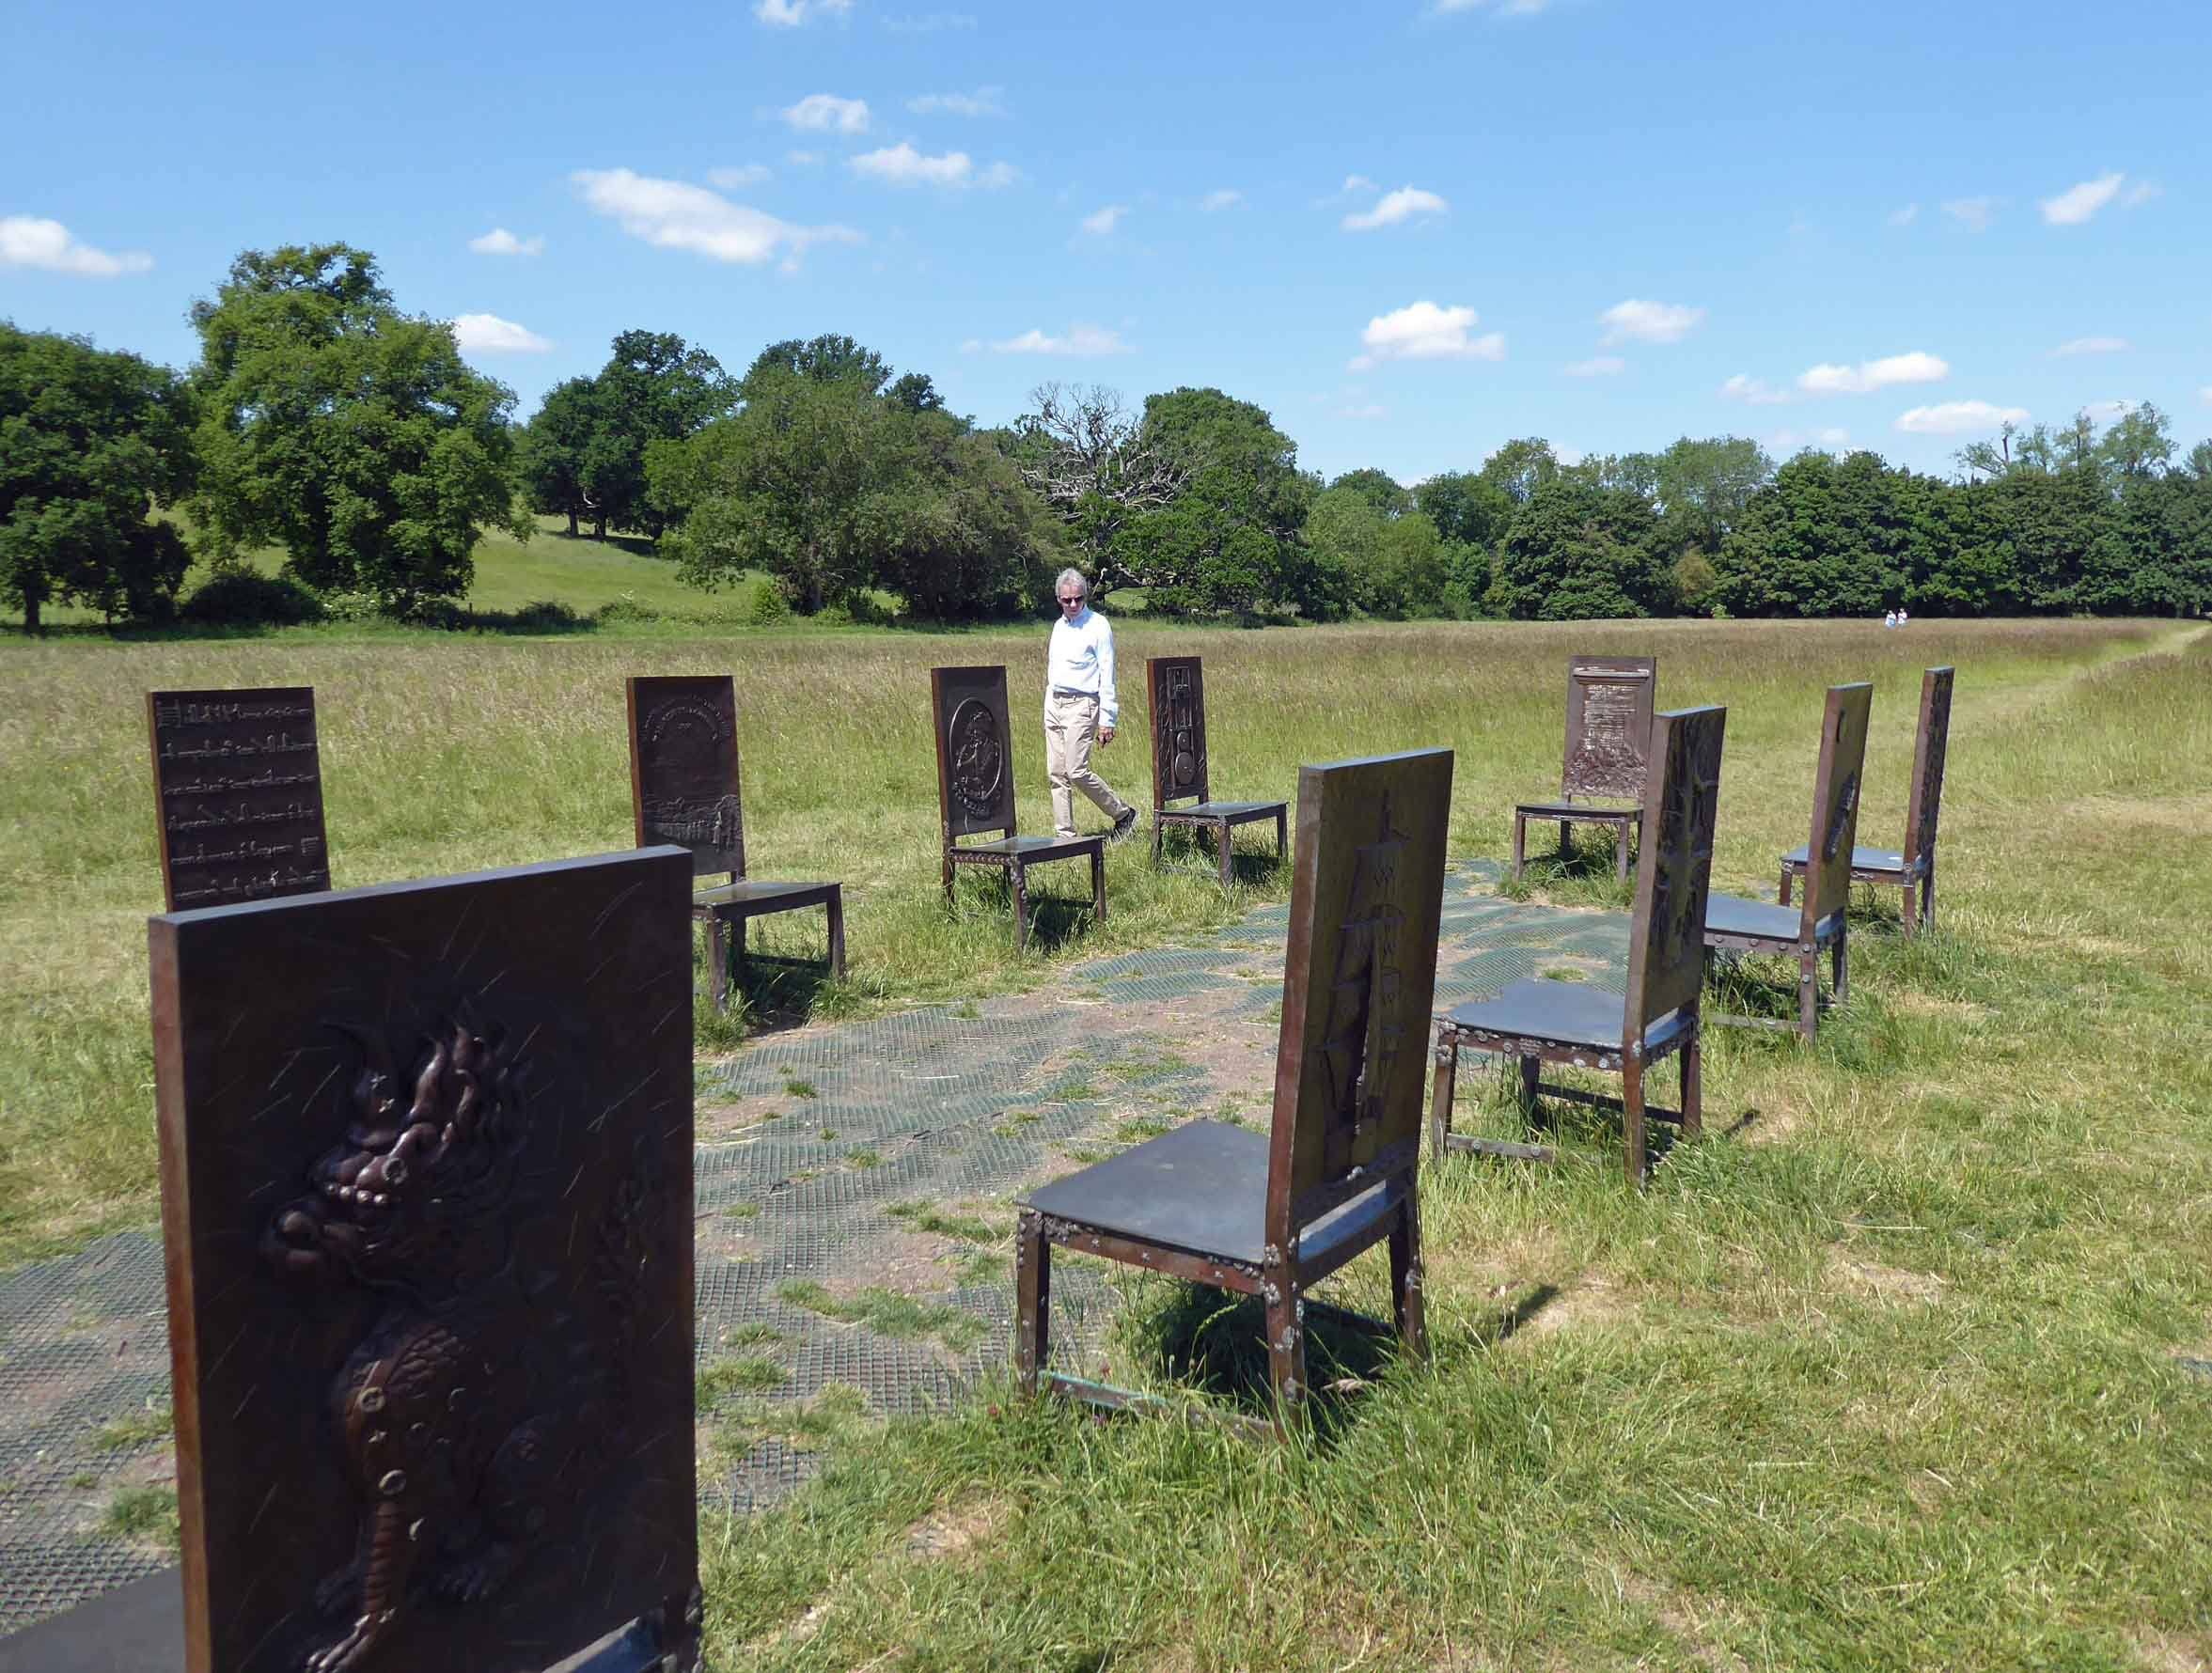 Metal chairs in a landscape